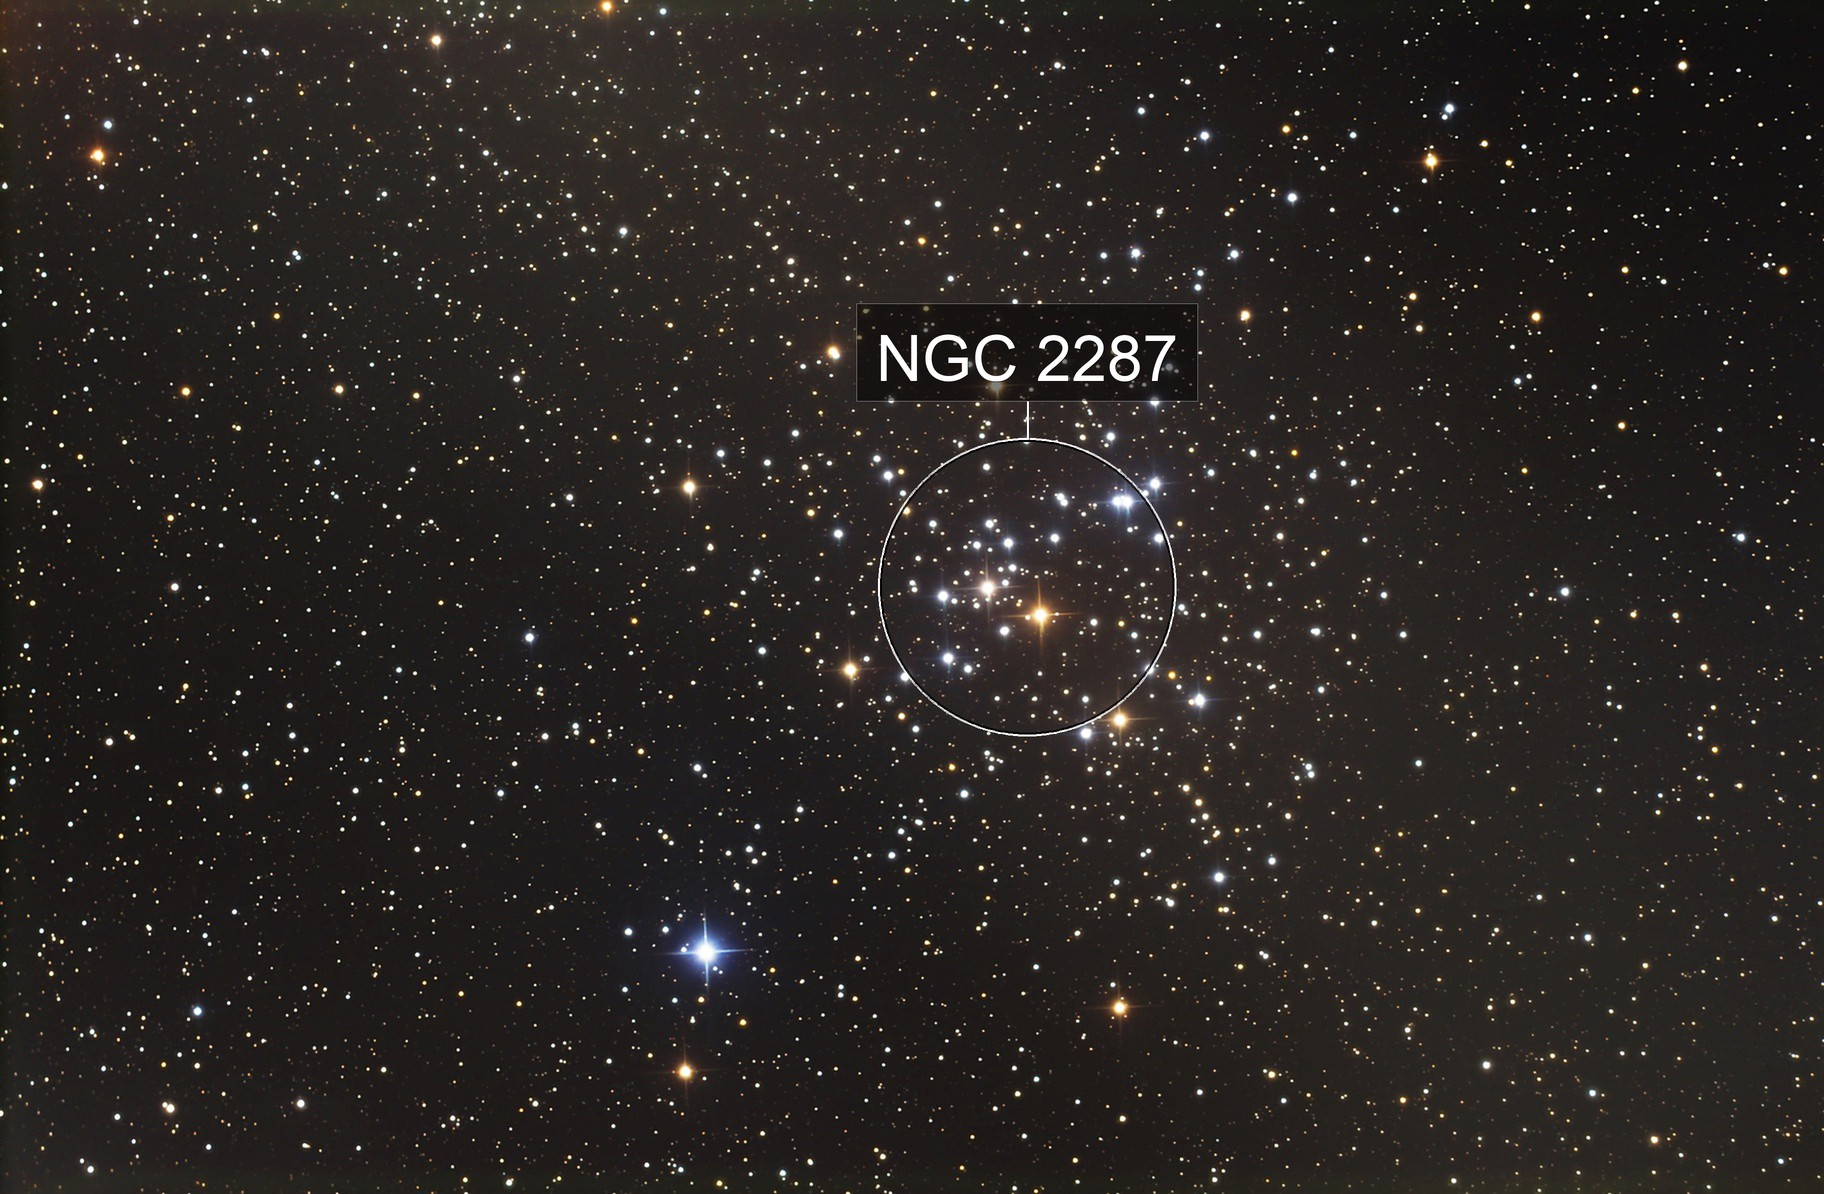 M41 - open cluster